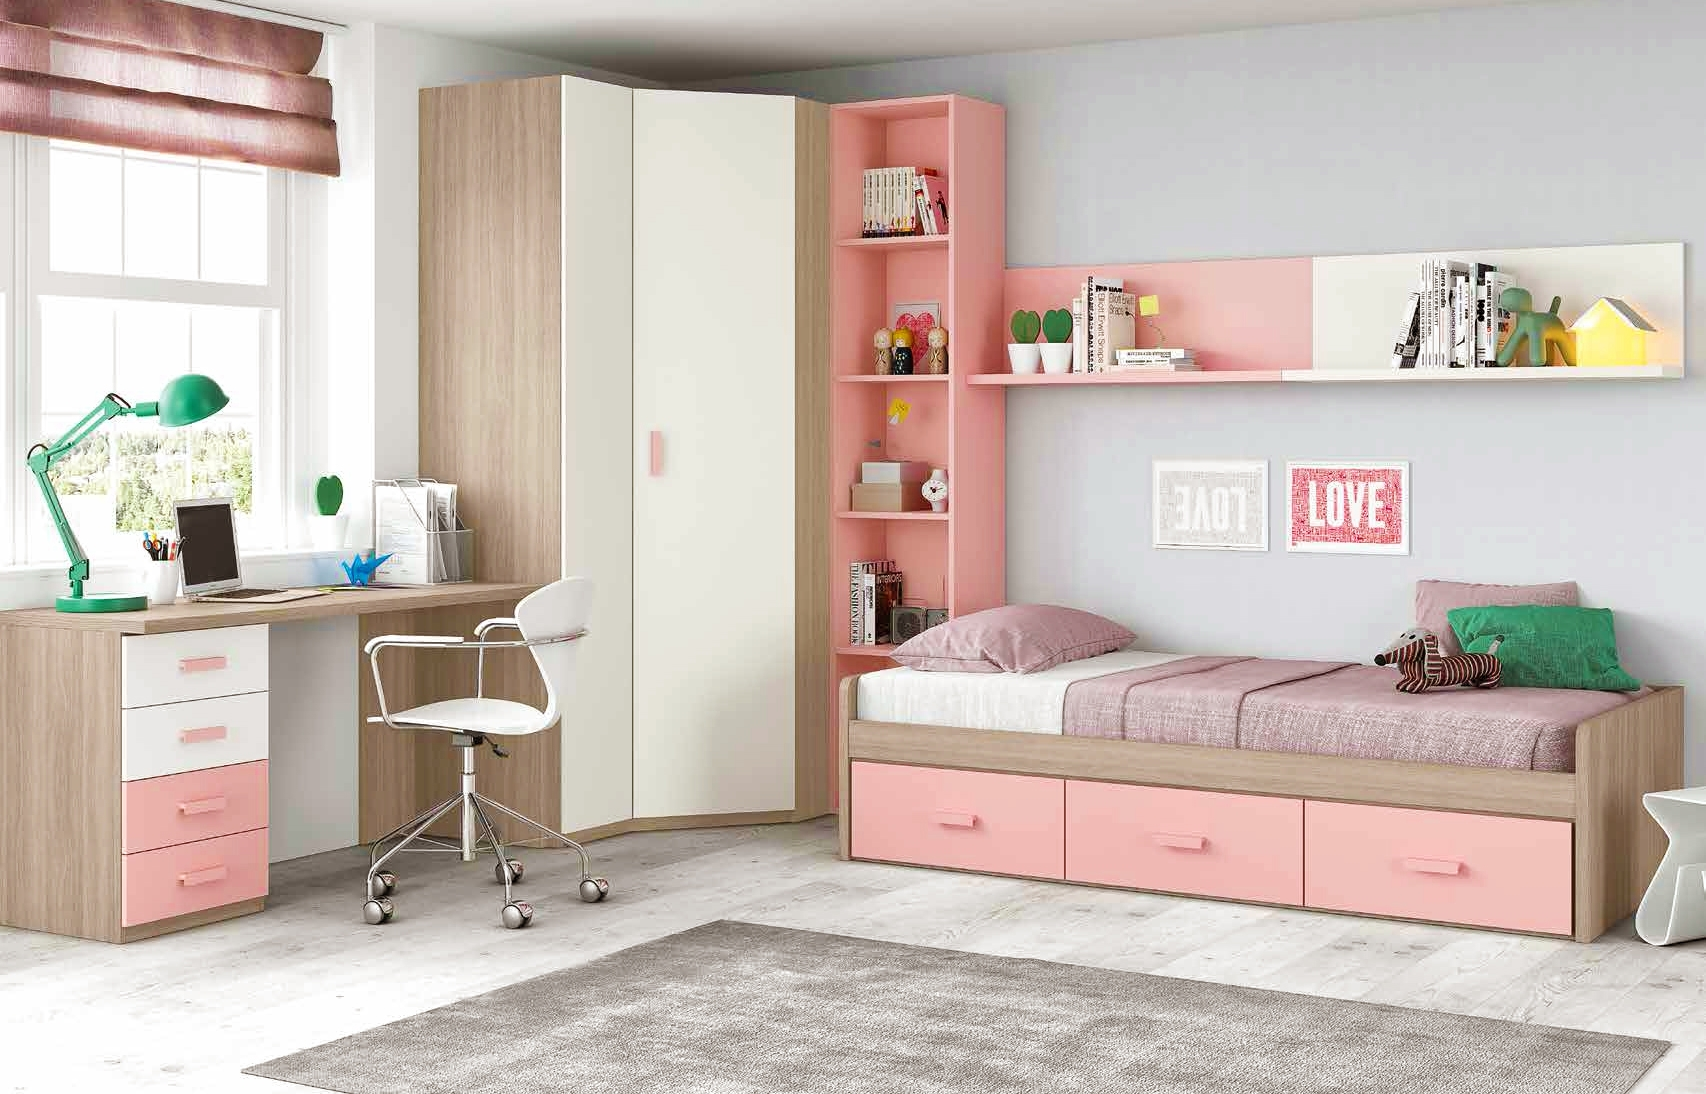 photo de chambre d ado fille poitiers design